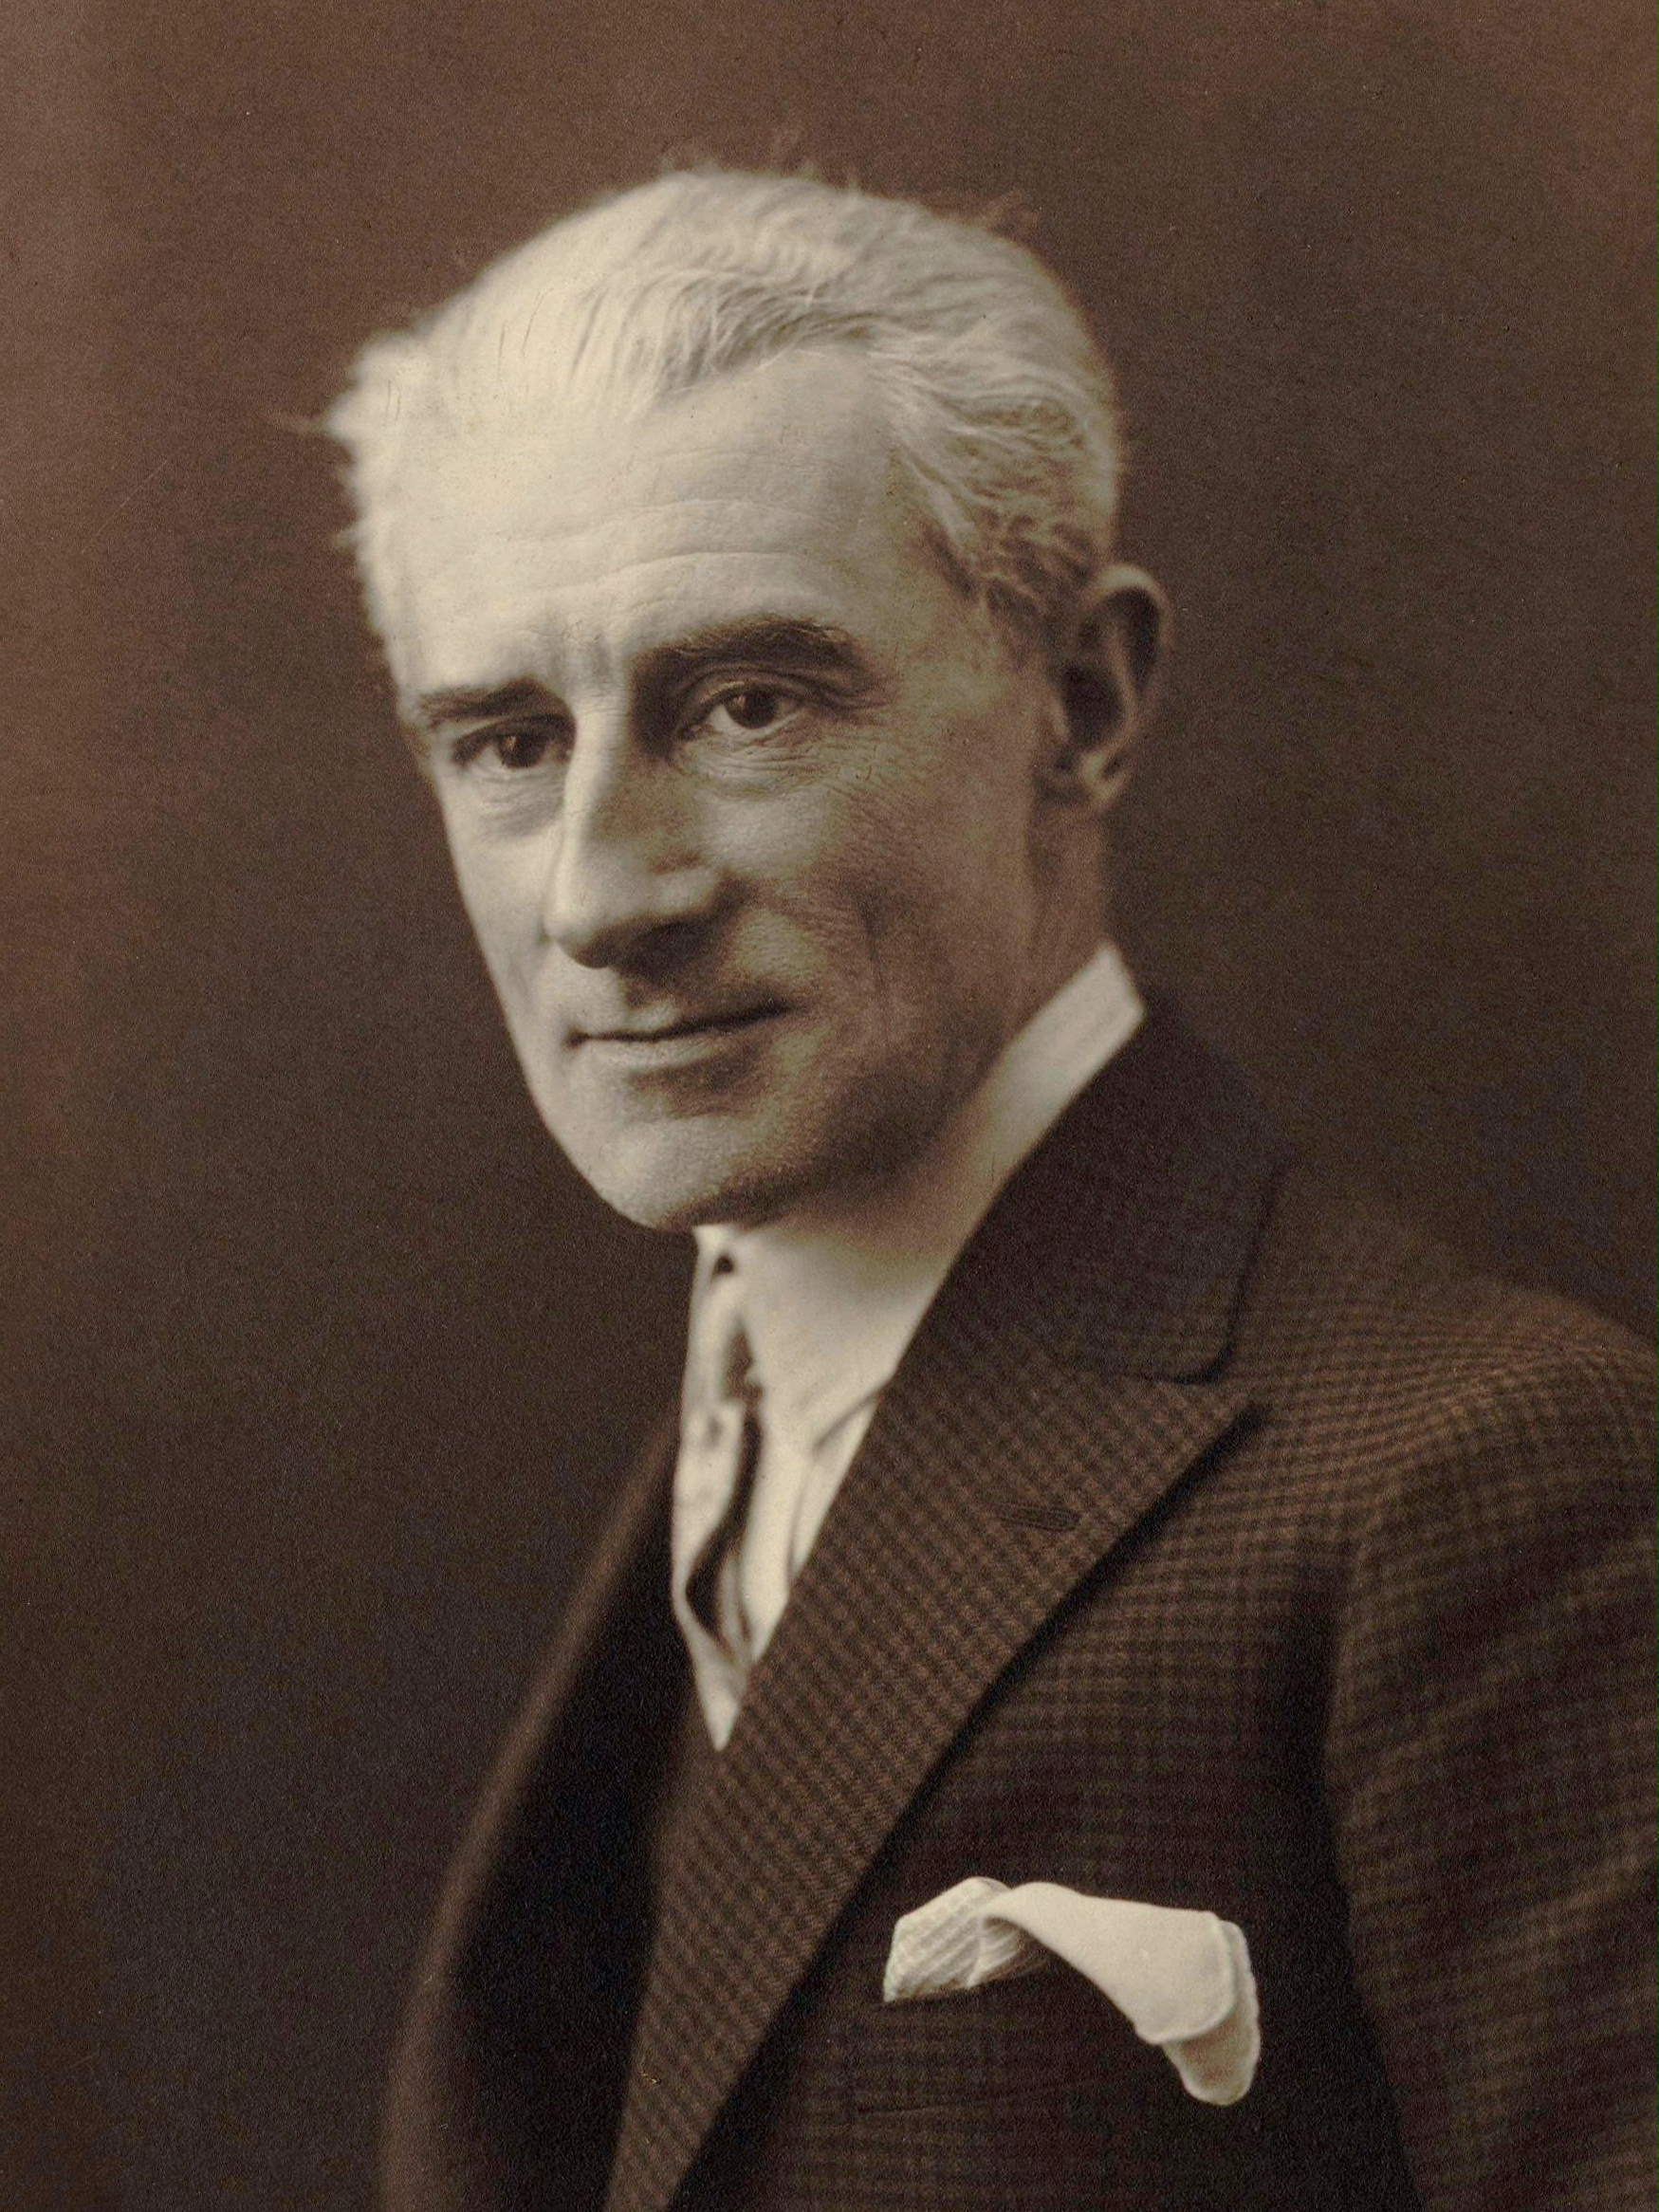 http://upload.wikimedia.org/wikipedia/commons/7/78/Maurice_Ravel_1925.jpg